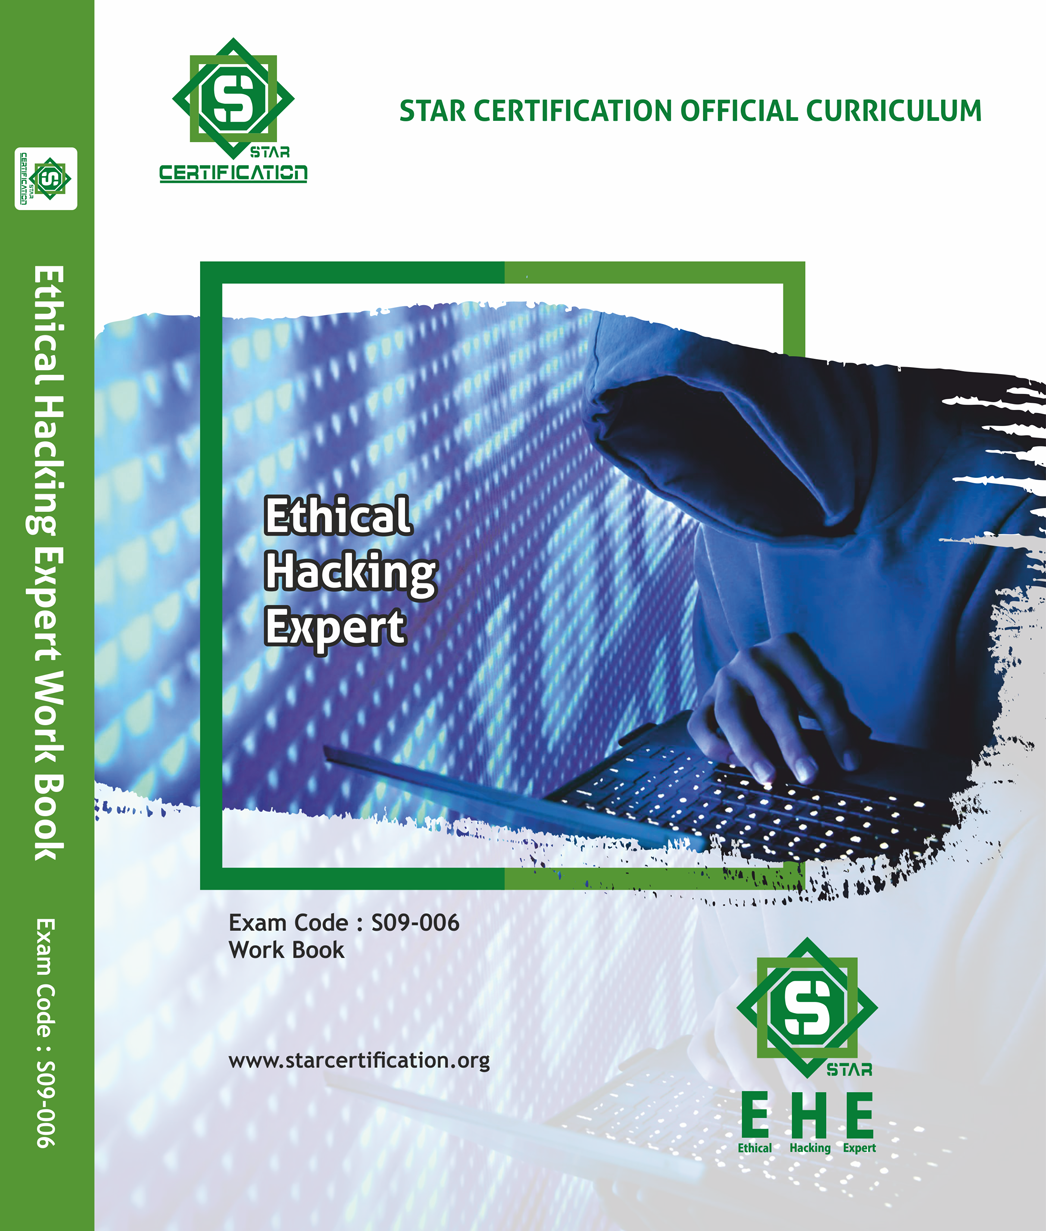 Star certification is leading organization in EHE courses, Cyber